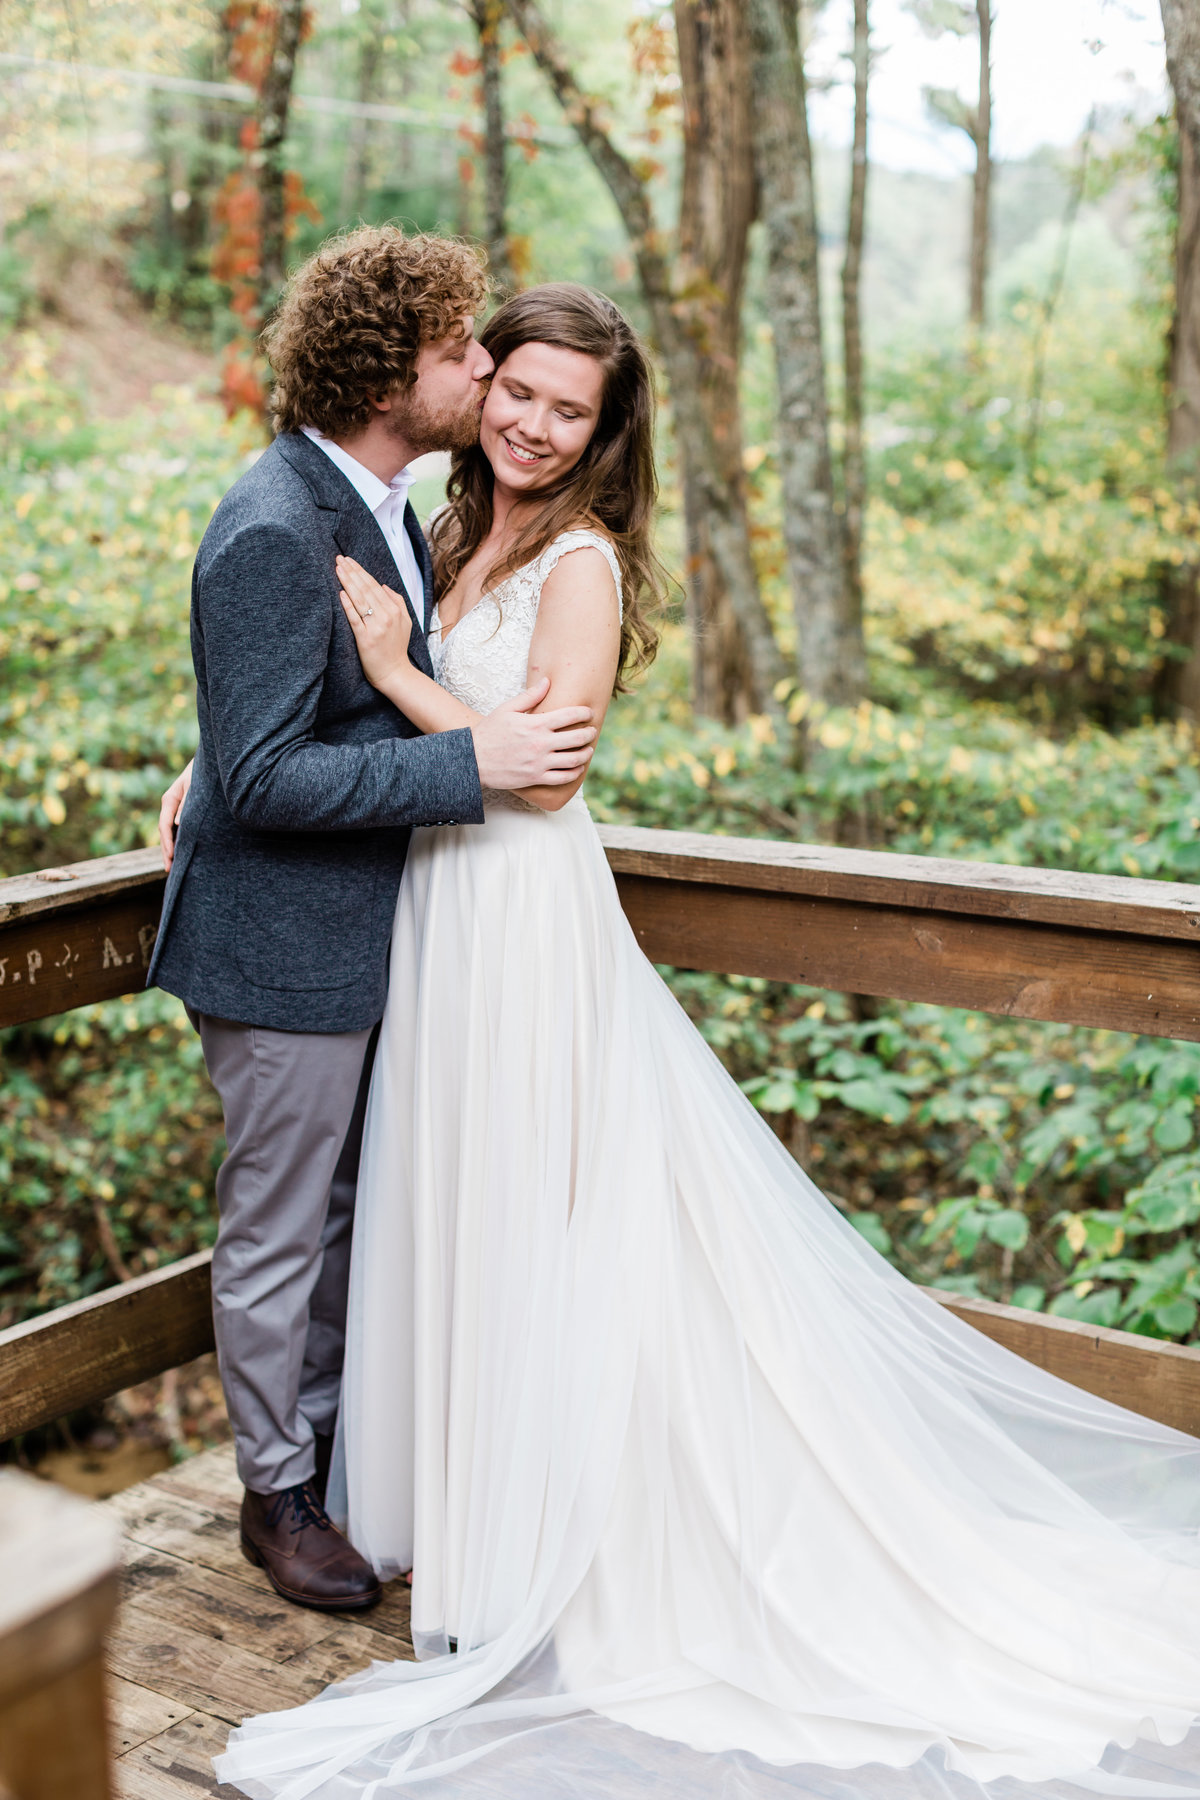 Danielle-Defayette-Photography-Mountain-Laurel-Farm-Wedding-Virginia-25